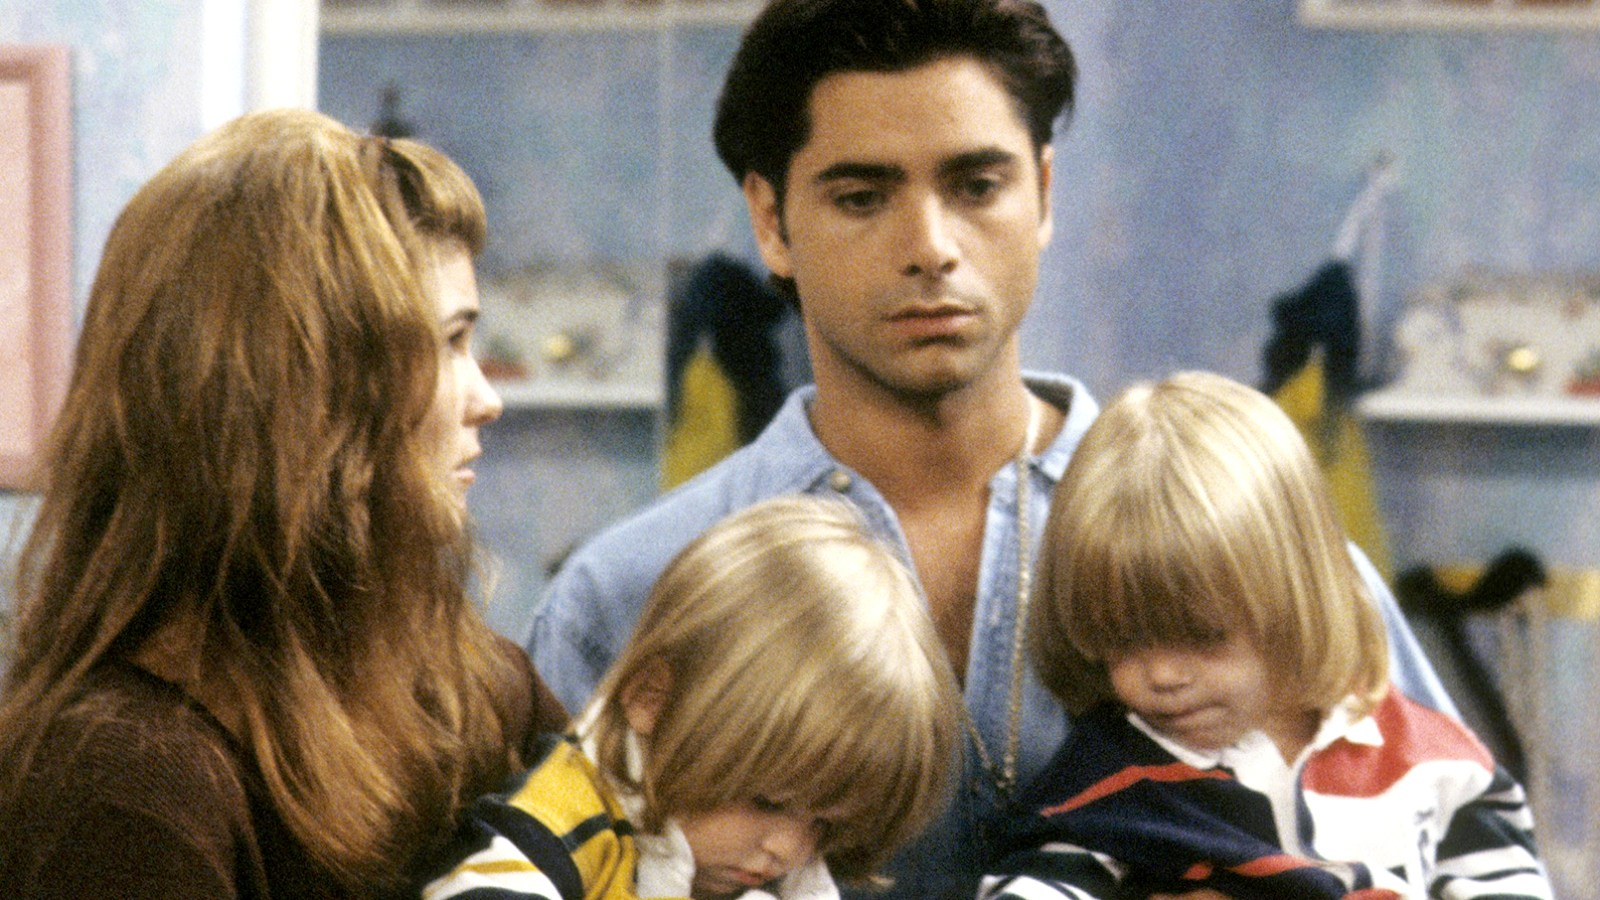 Lori Loughlin's Character Argued About Preschool Scam on